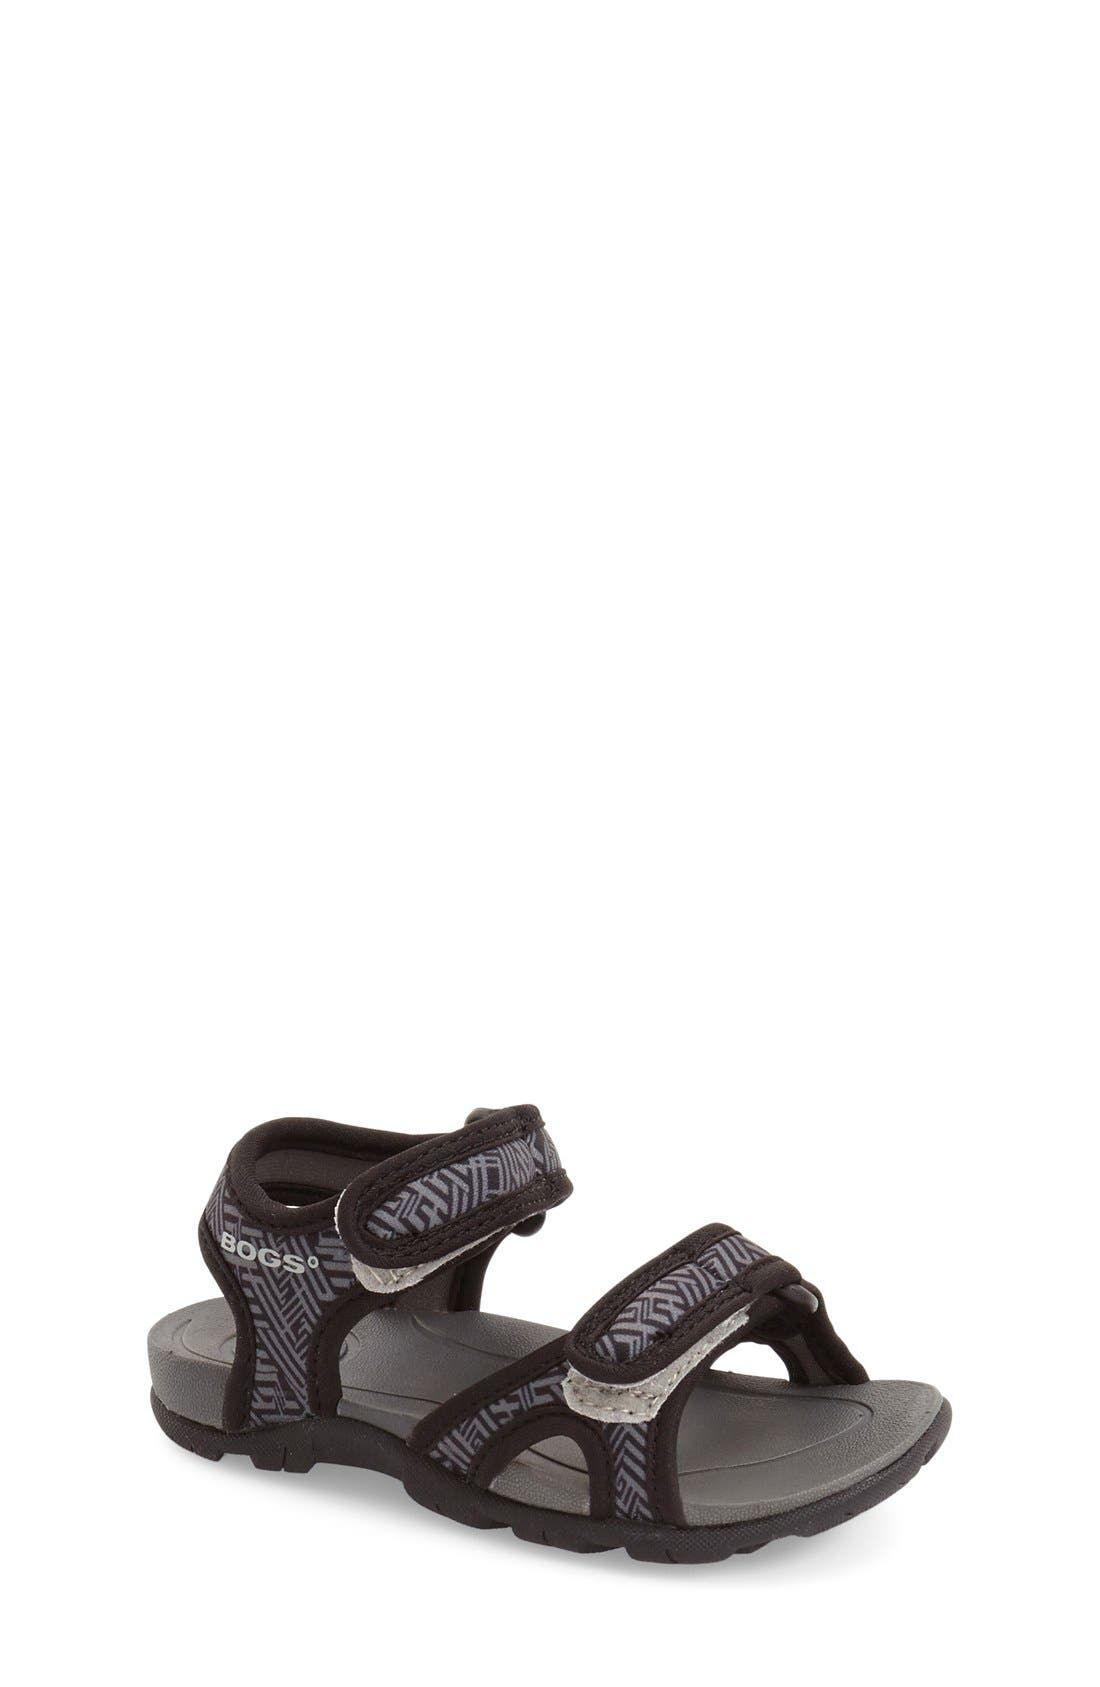 Bogs Whitefish Shatter Waterproof Sandal (Walker, Toddler & Little Kid)